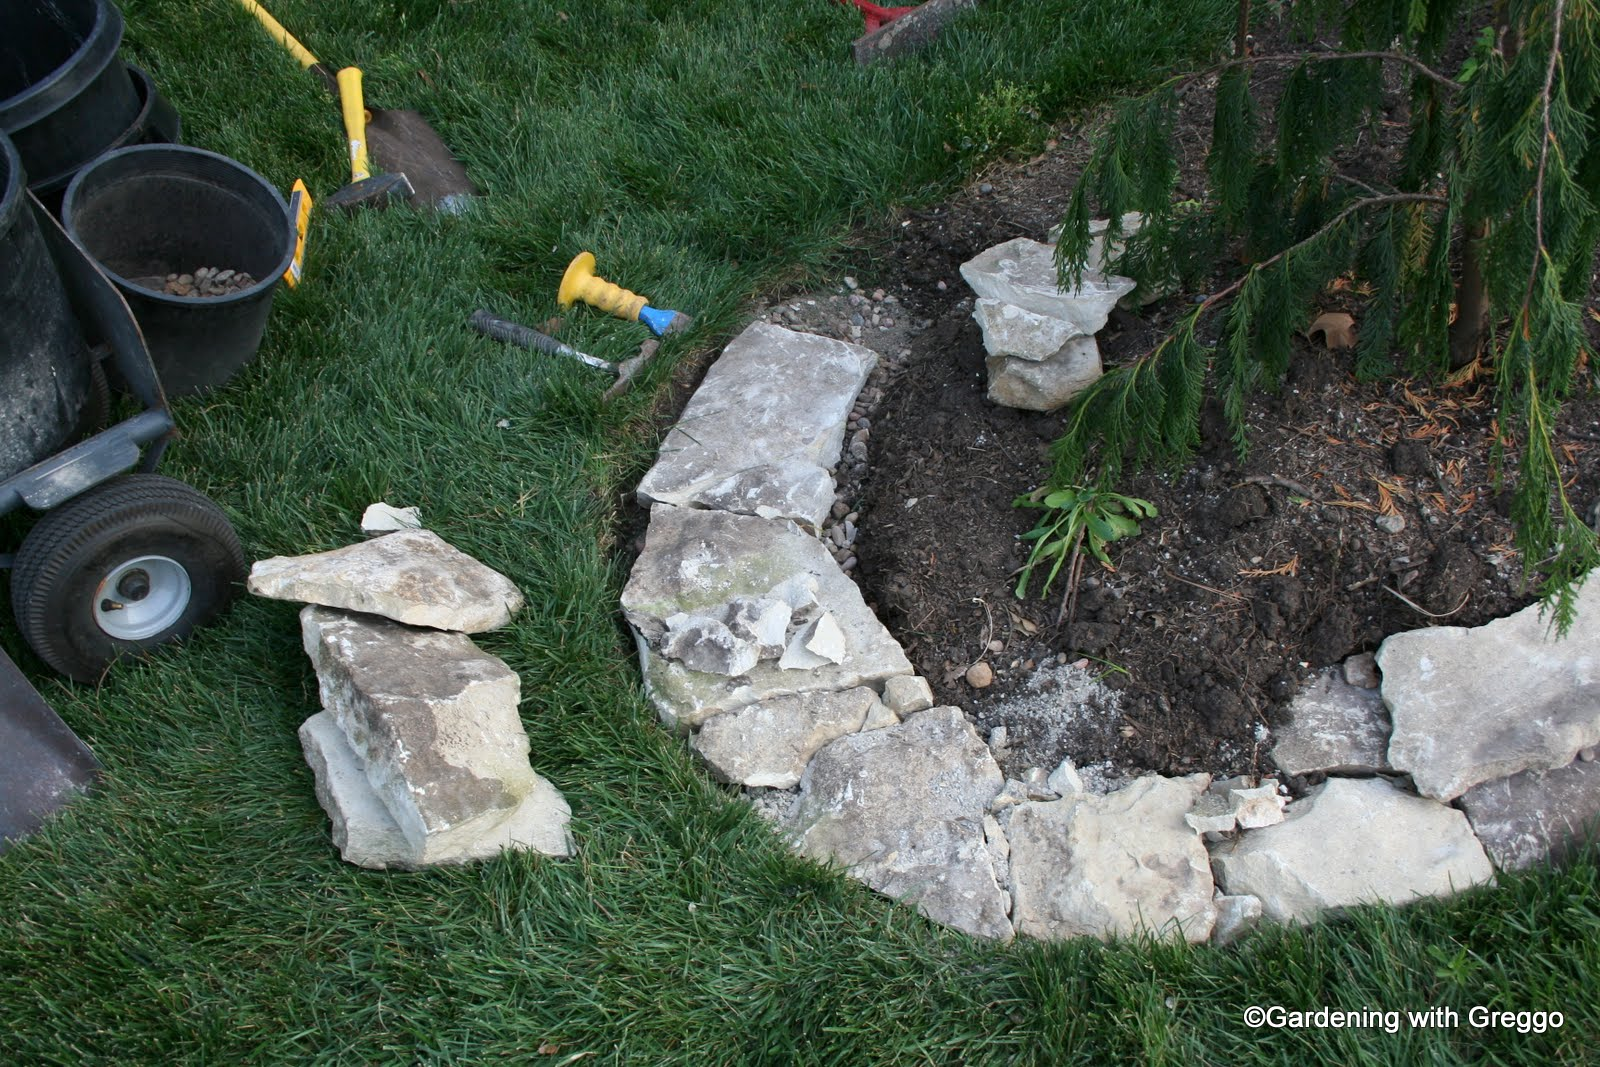 gardening with greggo field stone edging diy